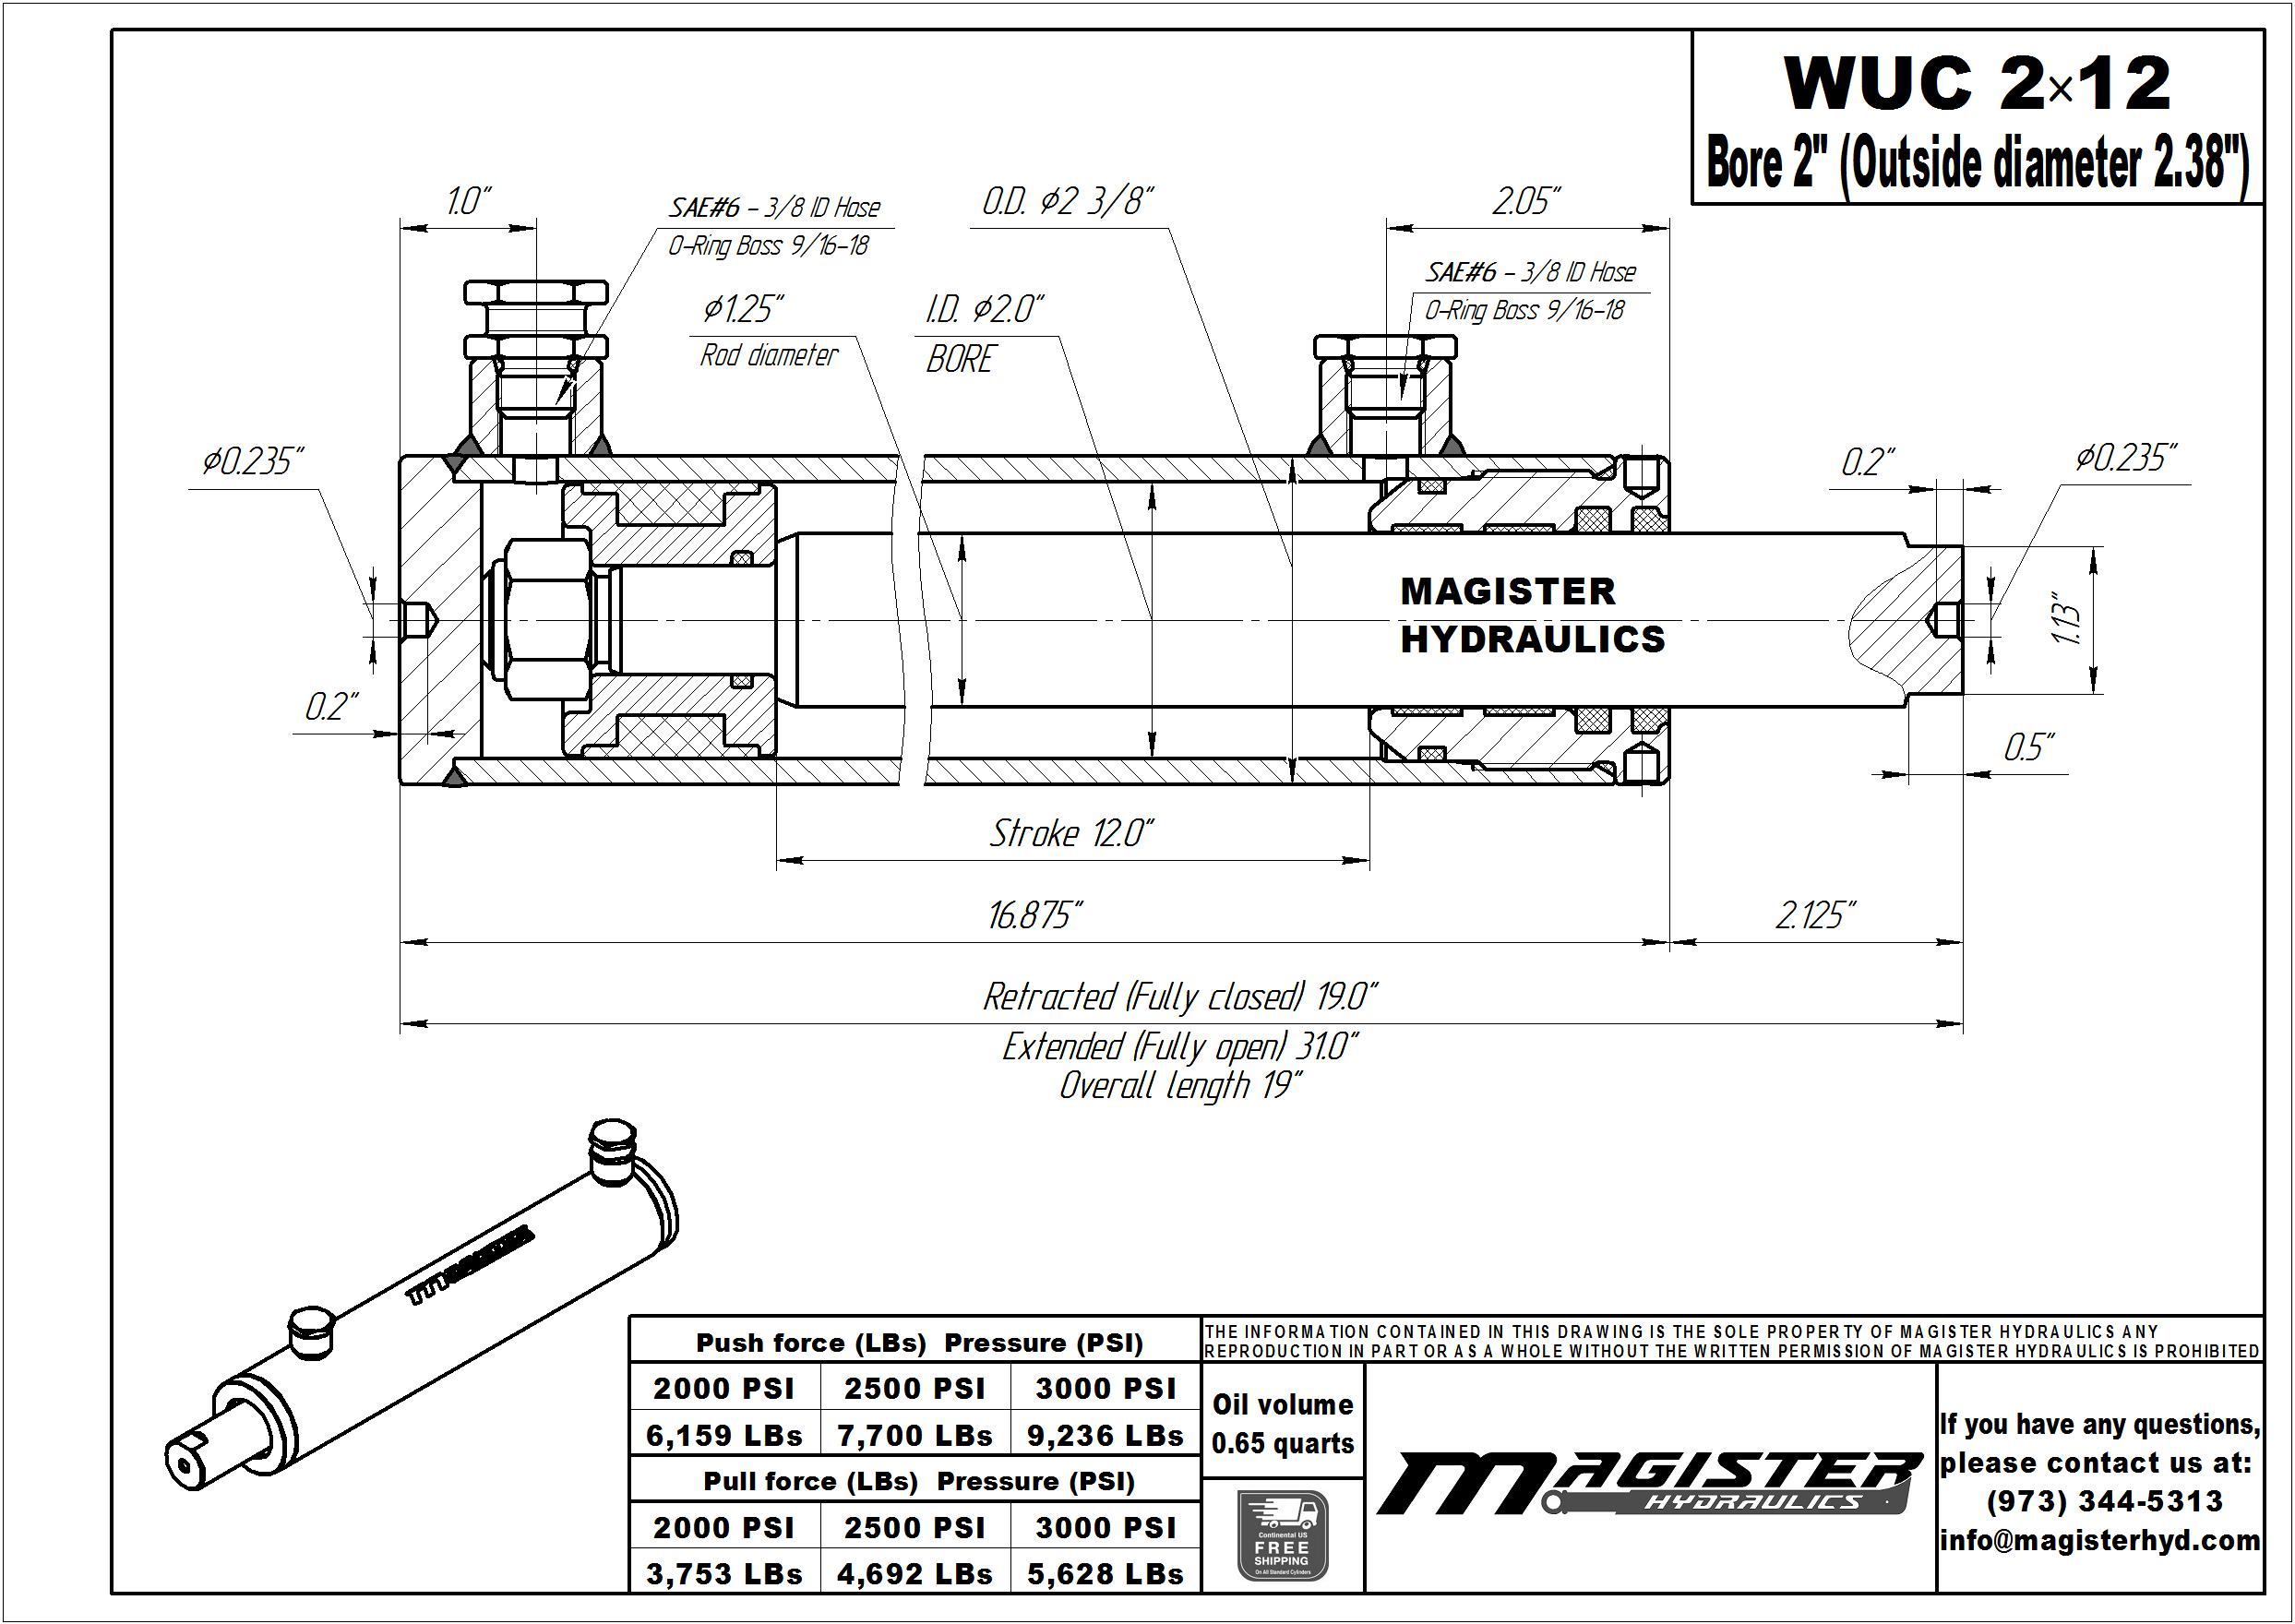 2 bore x 12 stroke hydraulic cylinder, welded universal double acting cylinder | Magister Hydraulics